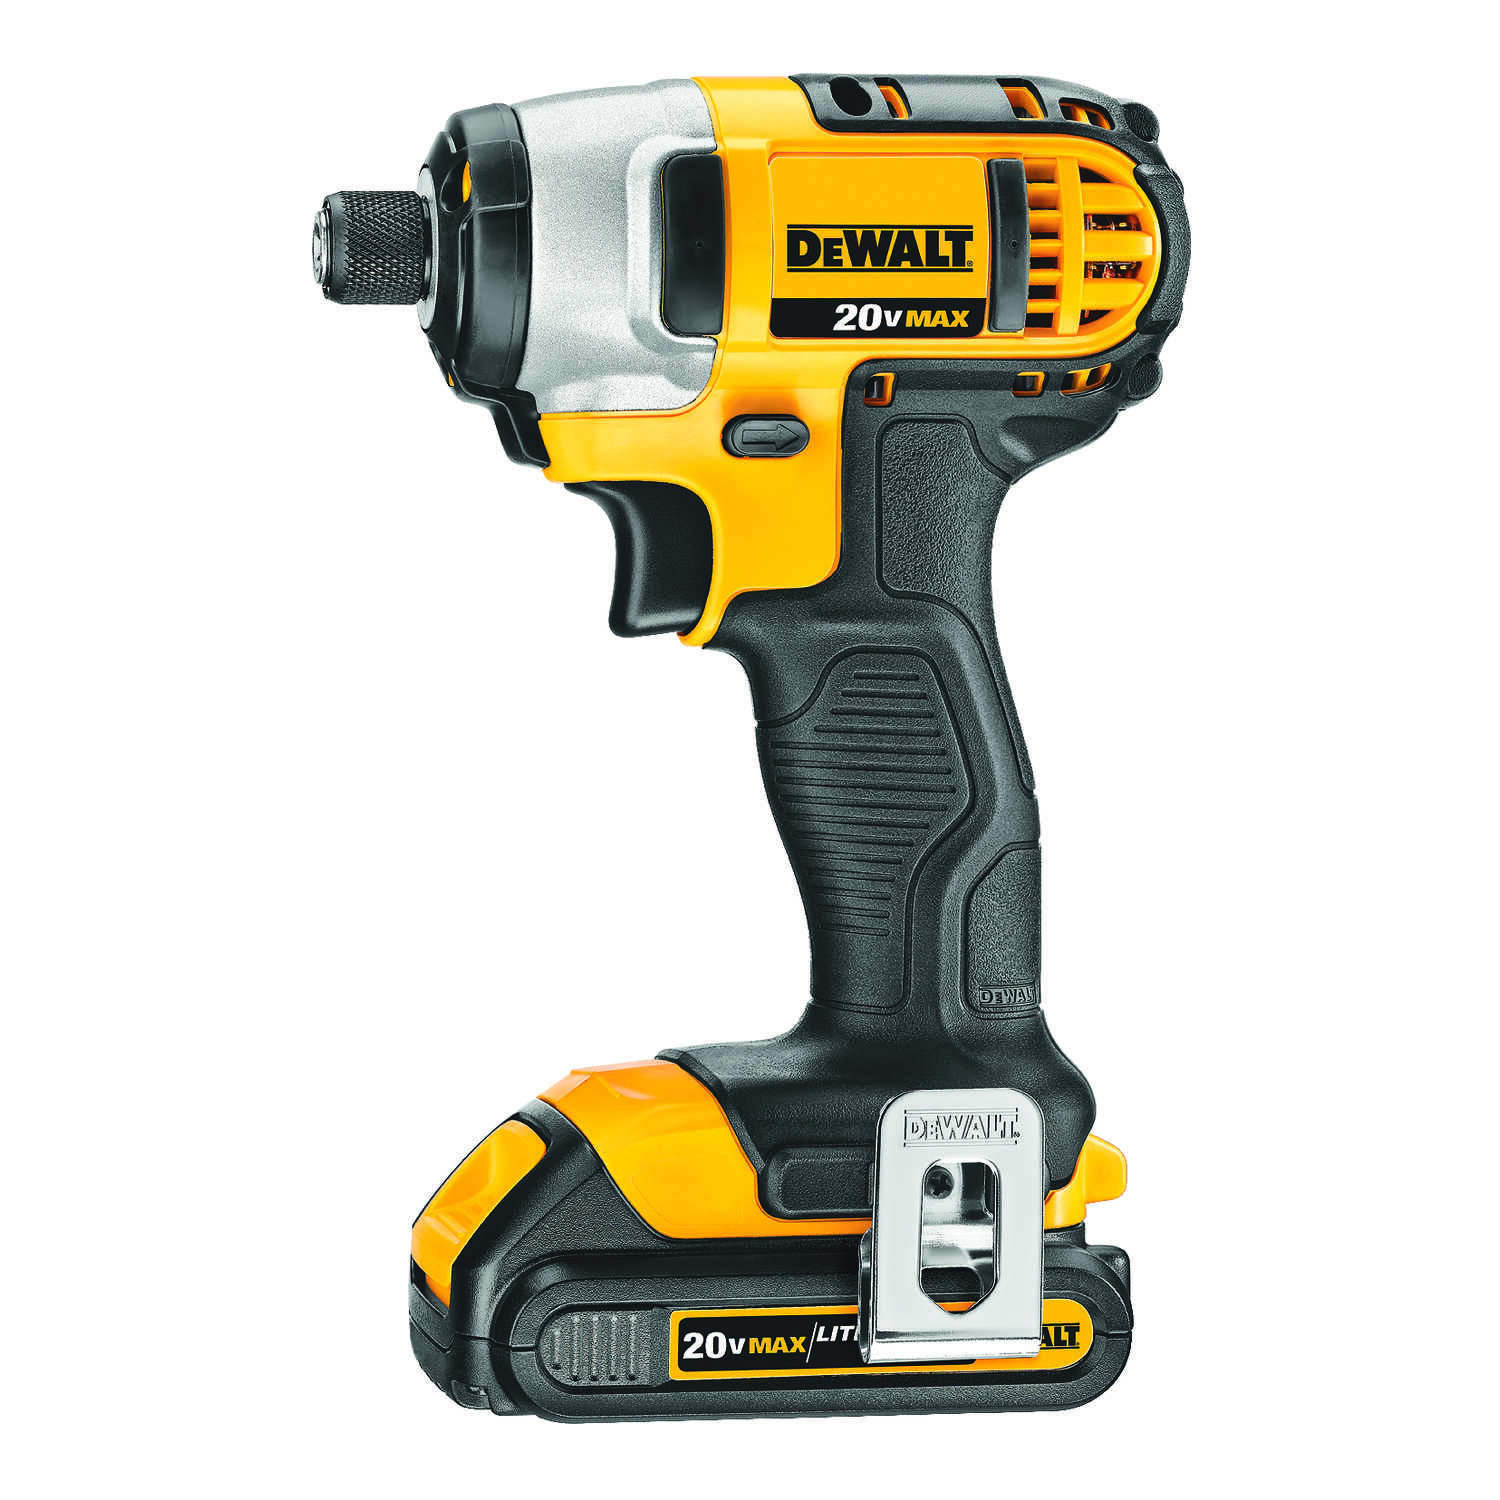 DeWalt  20V MAX  Cordless  Brushed  Impact Driver  Kit  117 ft./lbs.